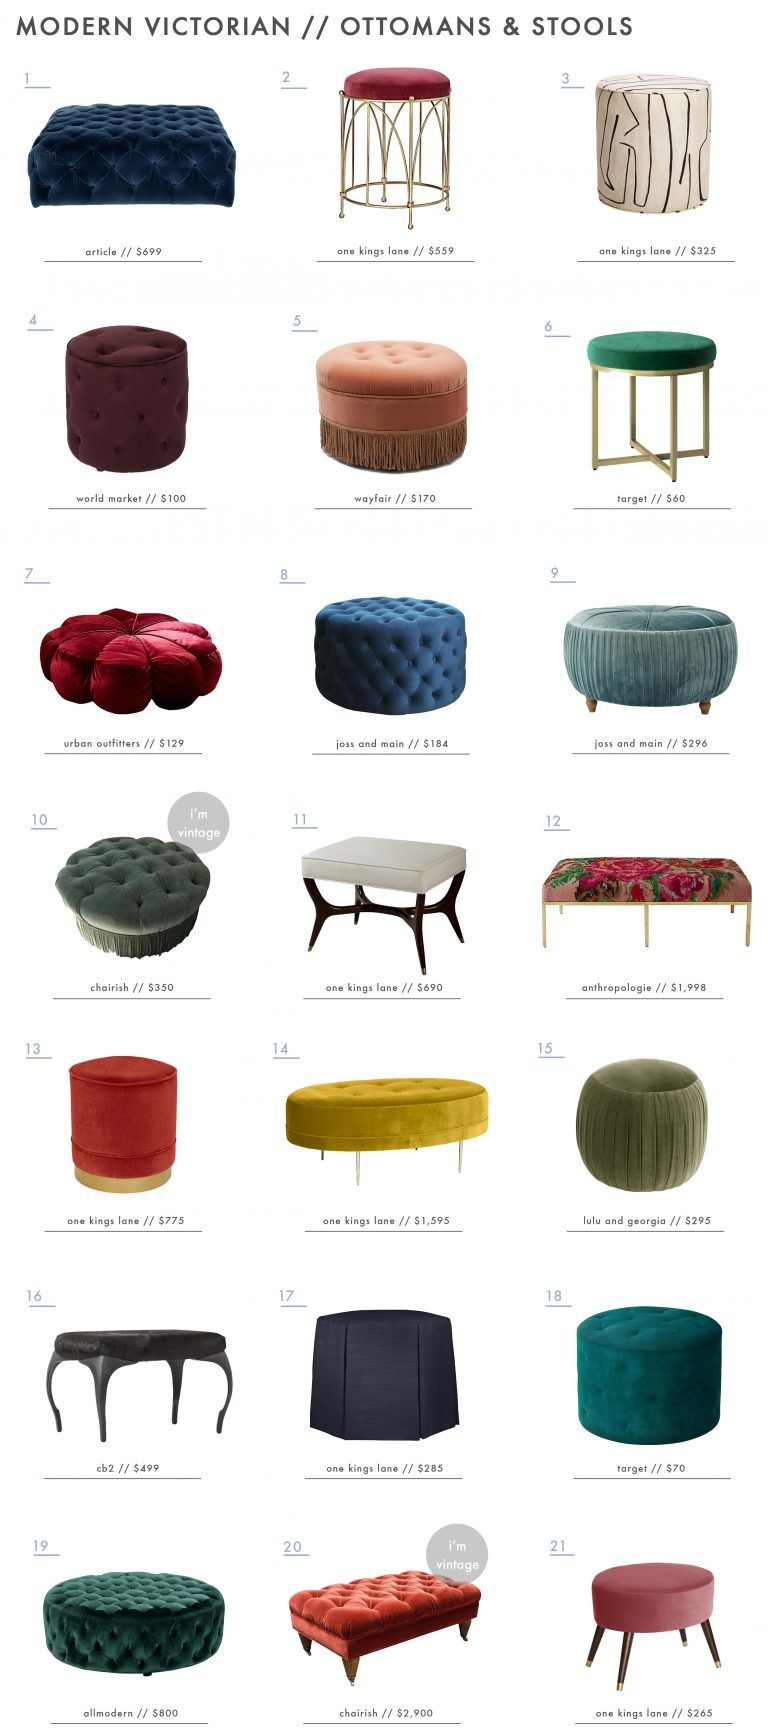 Modern Victorian Style: Furniture + Our Favorites Roundup #victorian